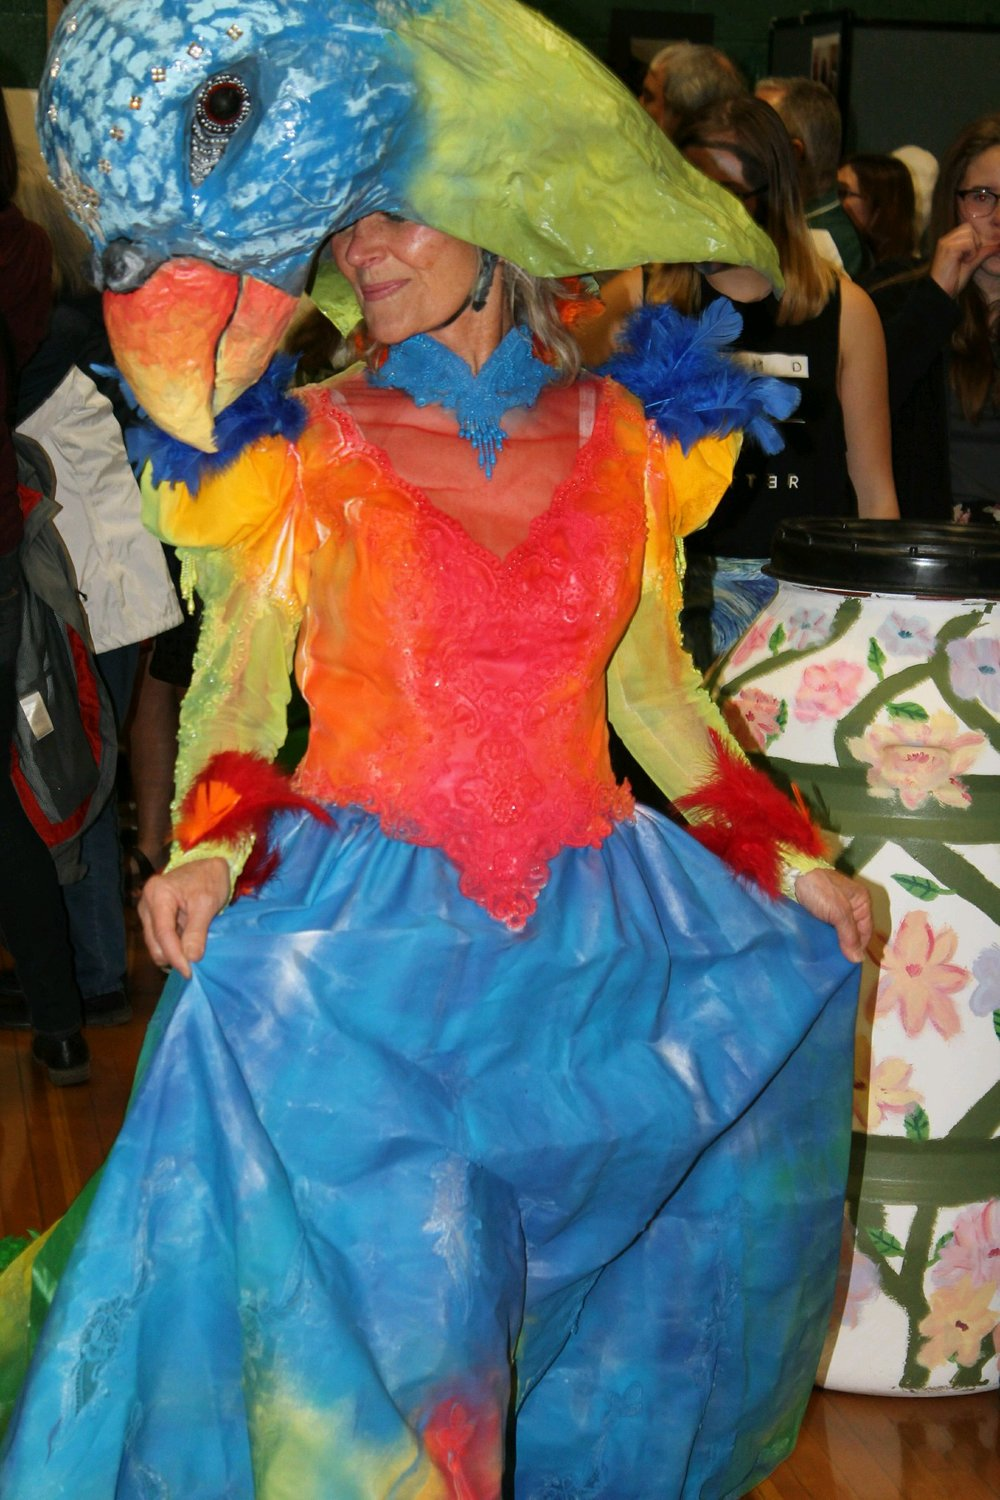 Barb Austin-Hutchins wearing her parrot-inspired dress.